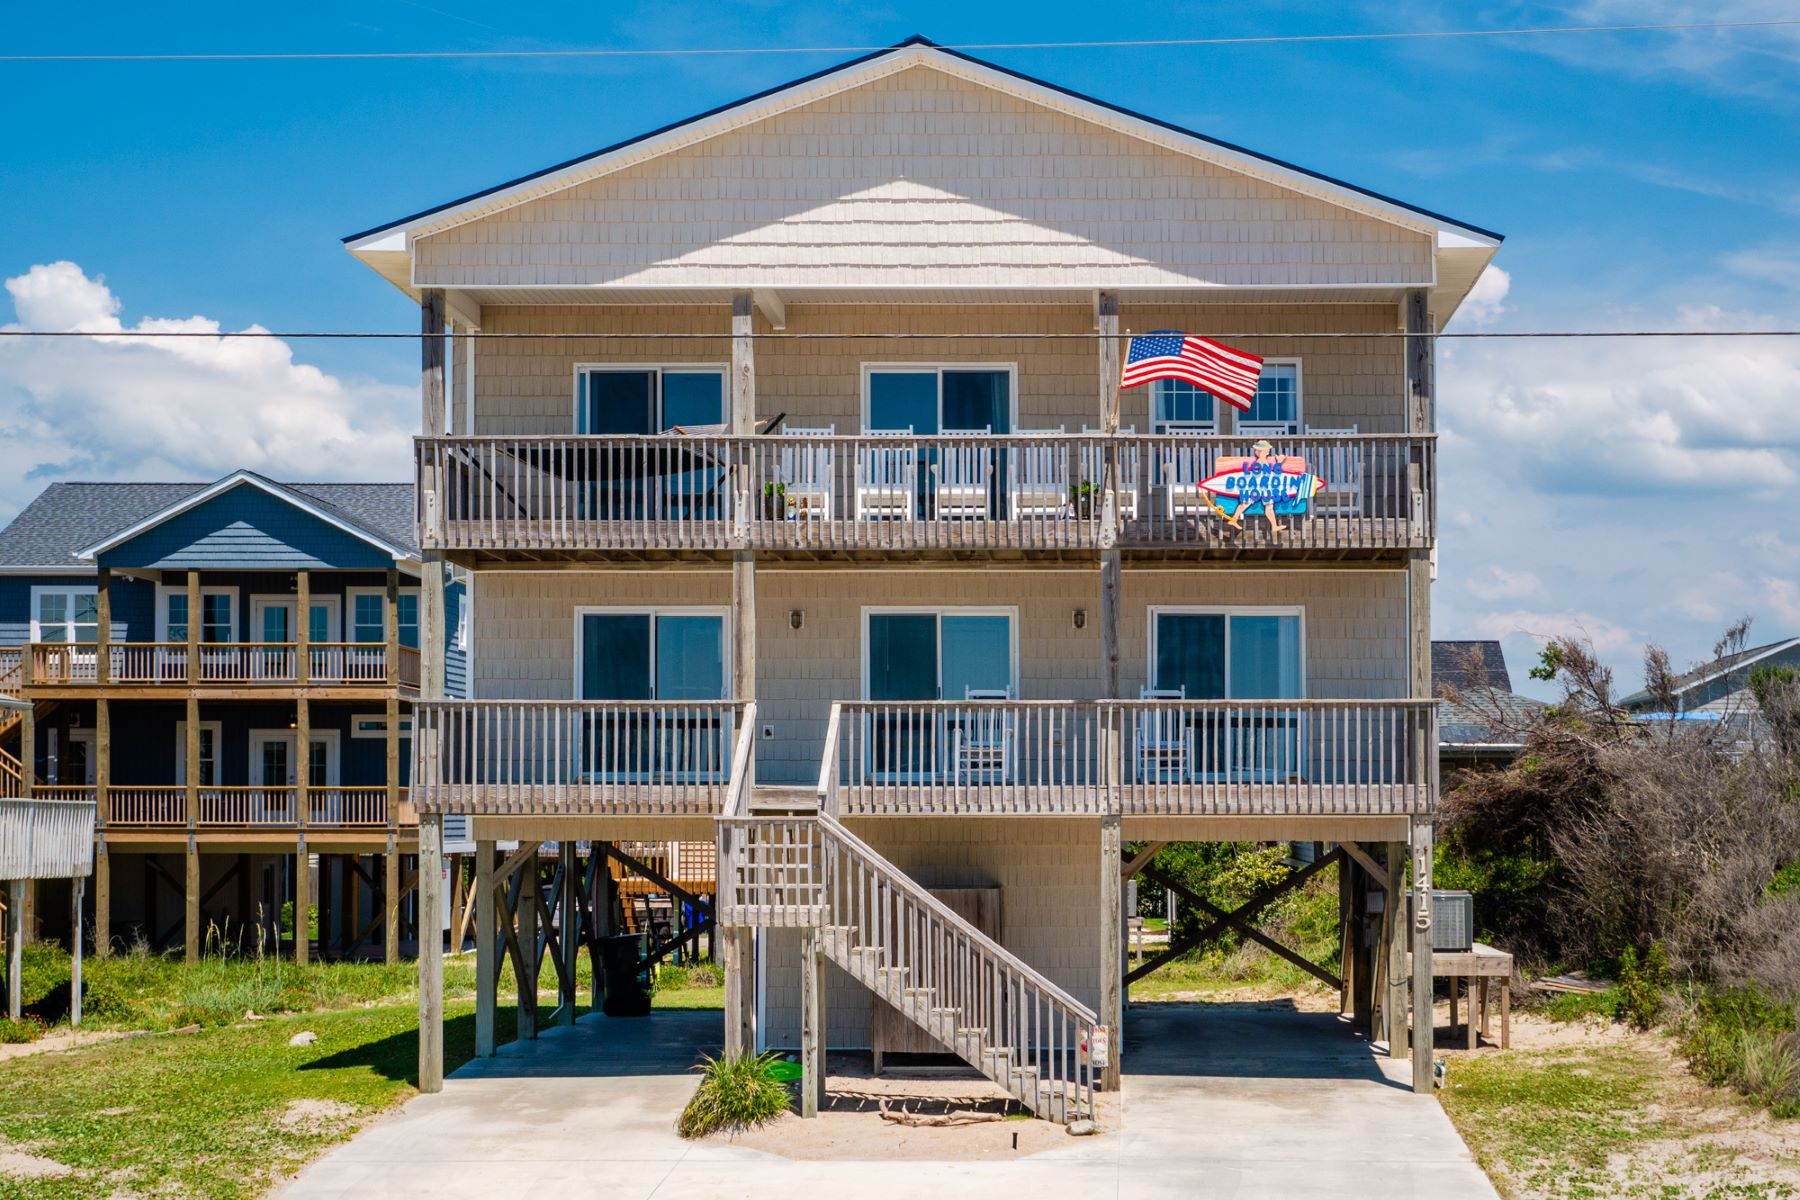 Single Family Homes for Active at Stunning Second Row Beach House 1415 N Shore Drive Surf City, North Carolina 28445 United States